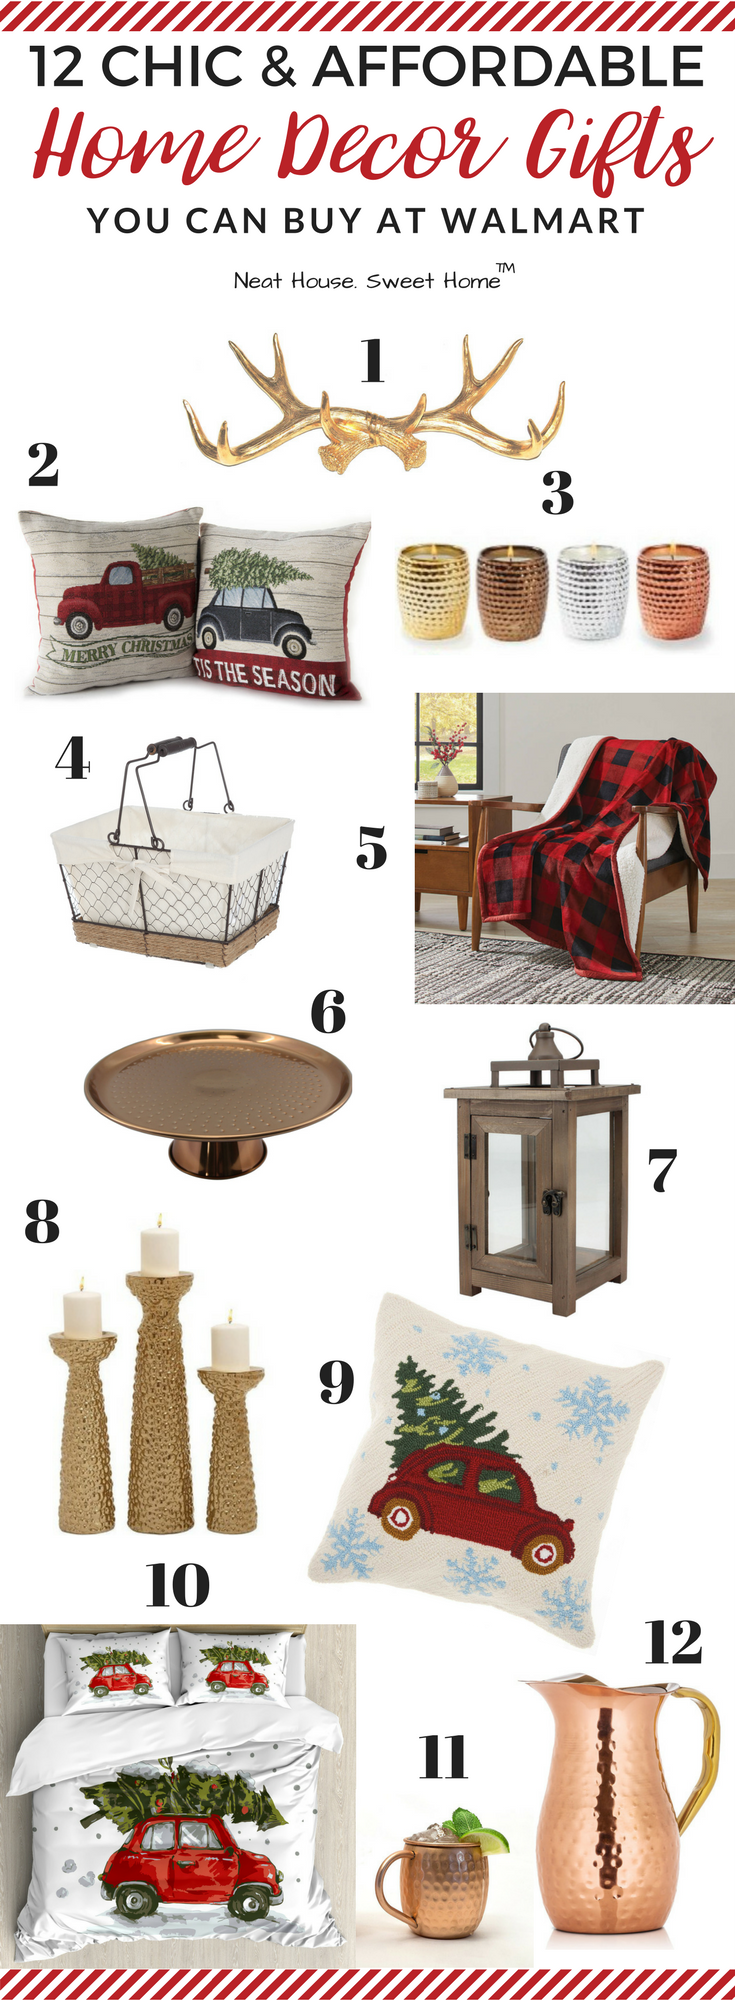 12 home decor gift ideas from walmart holiday gift guide for Affordable home accessories